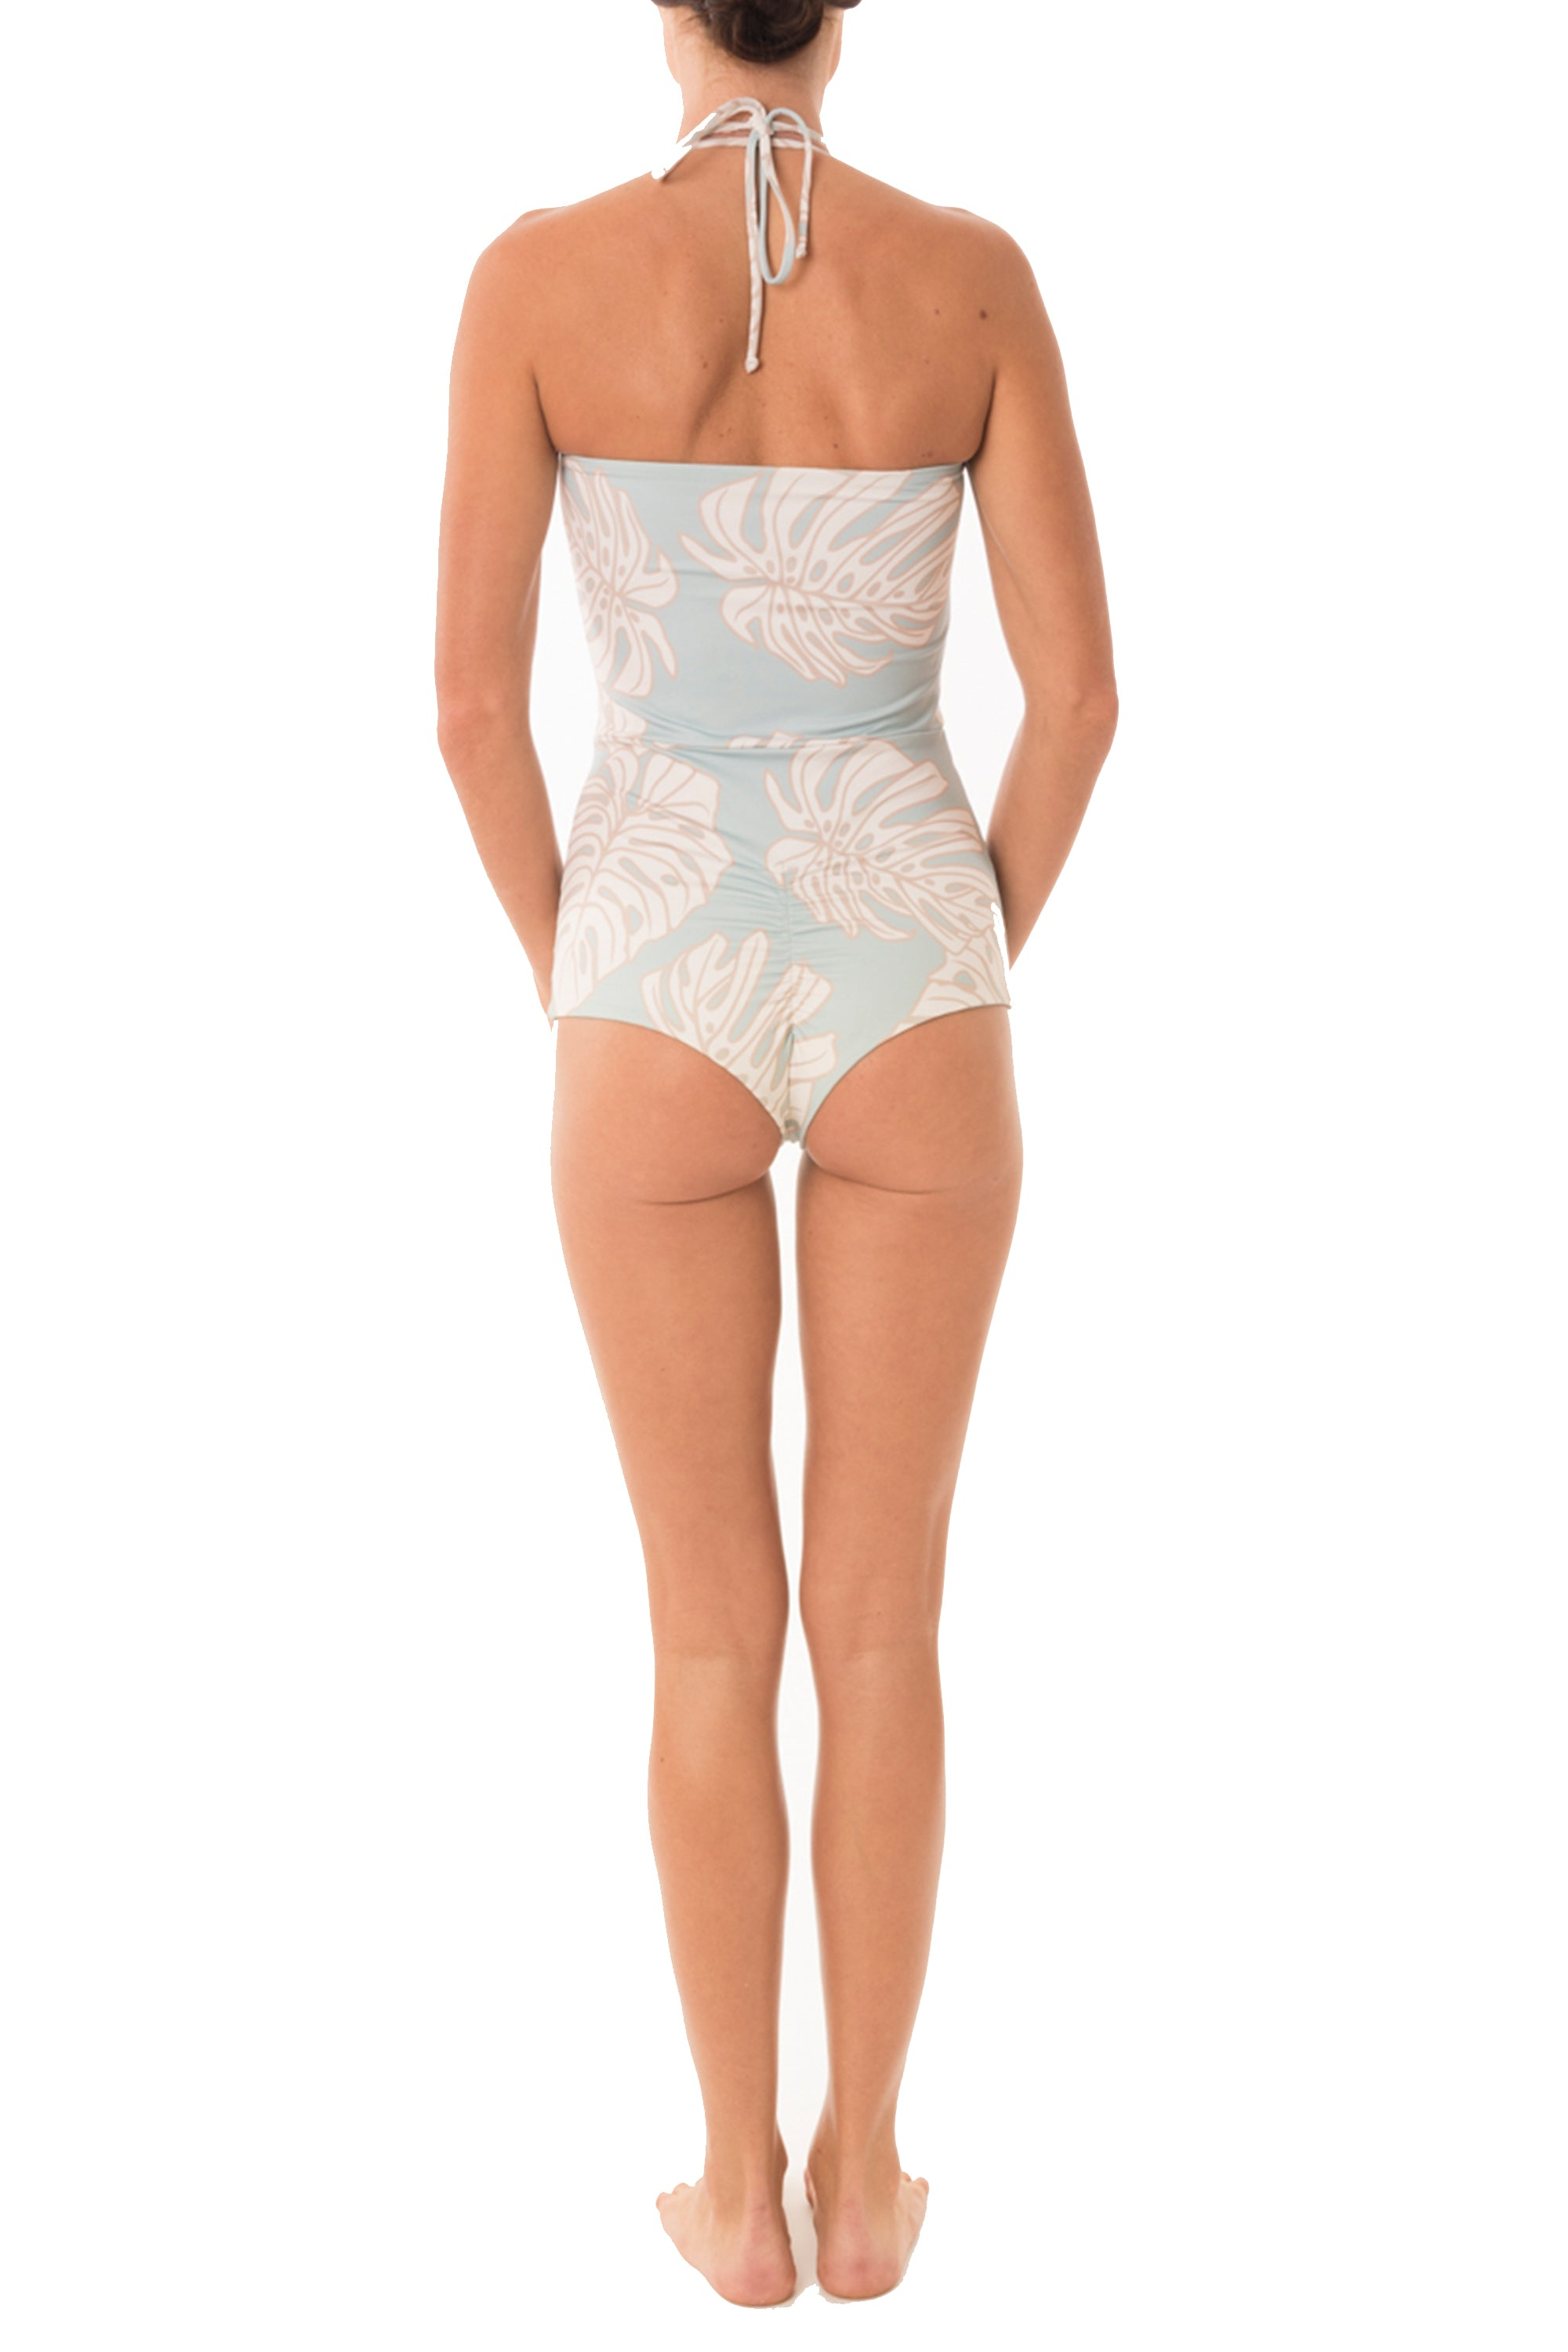 Retro-Cheek One Piece in Aqua Leaf (1 Left)